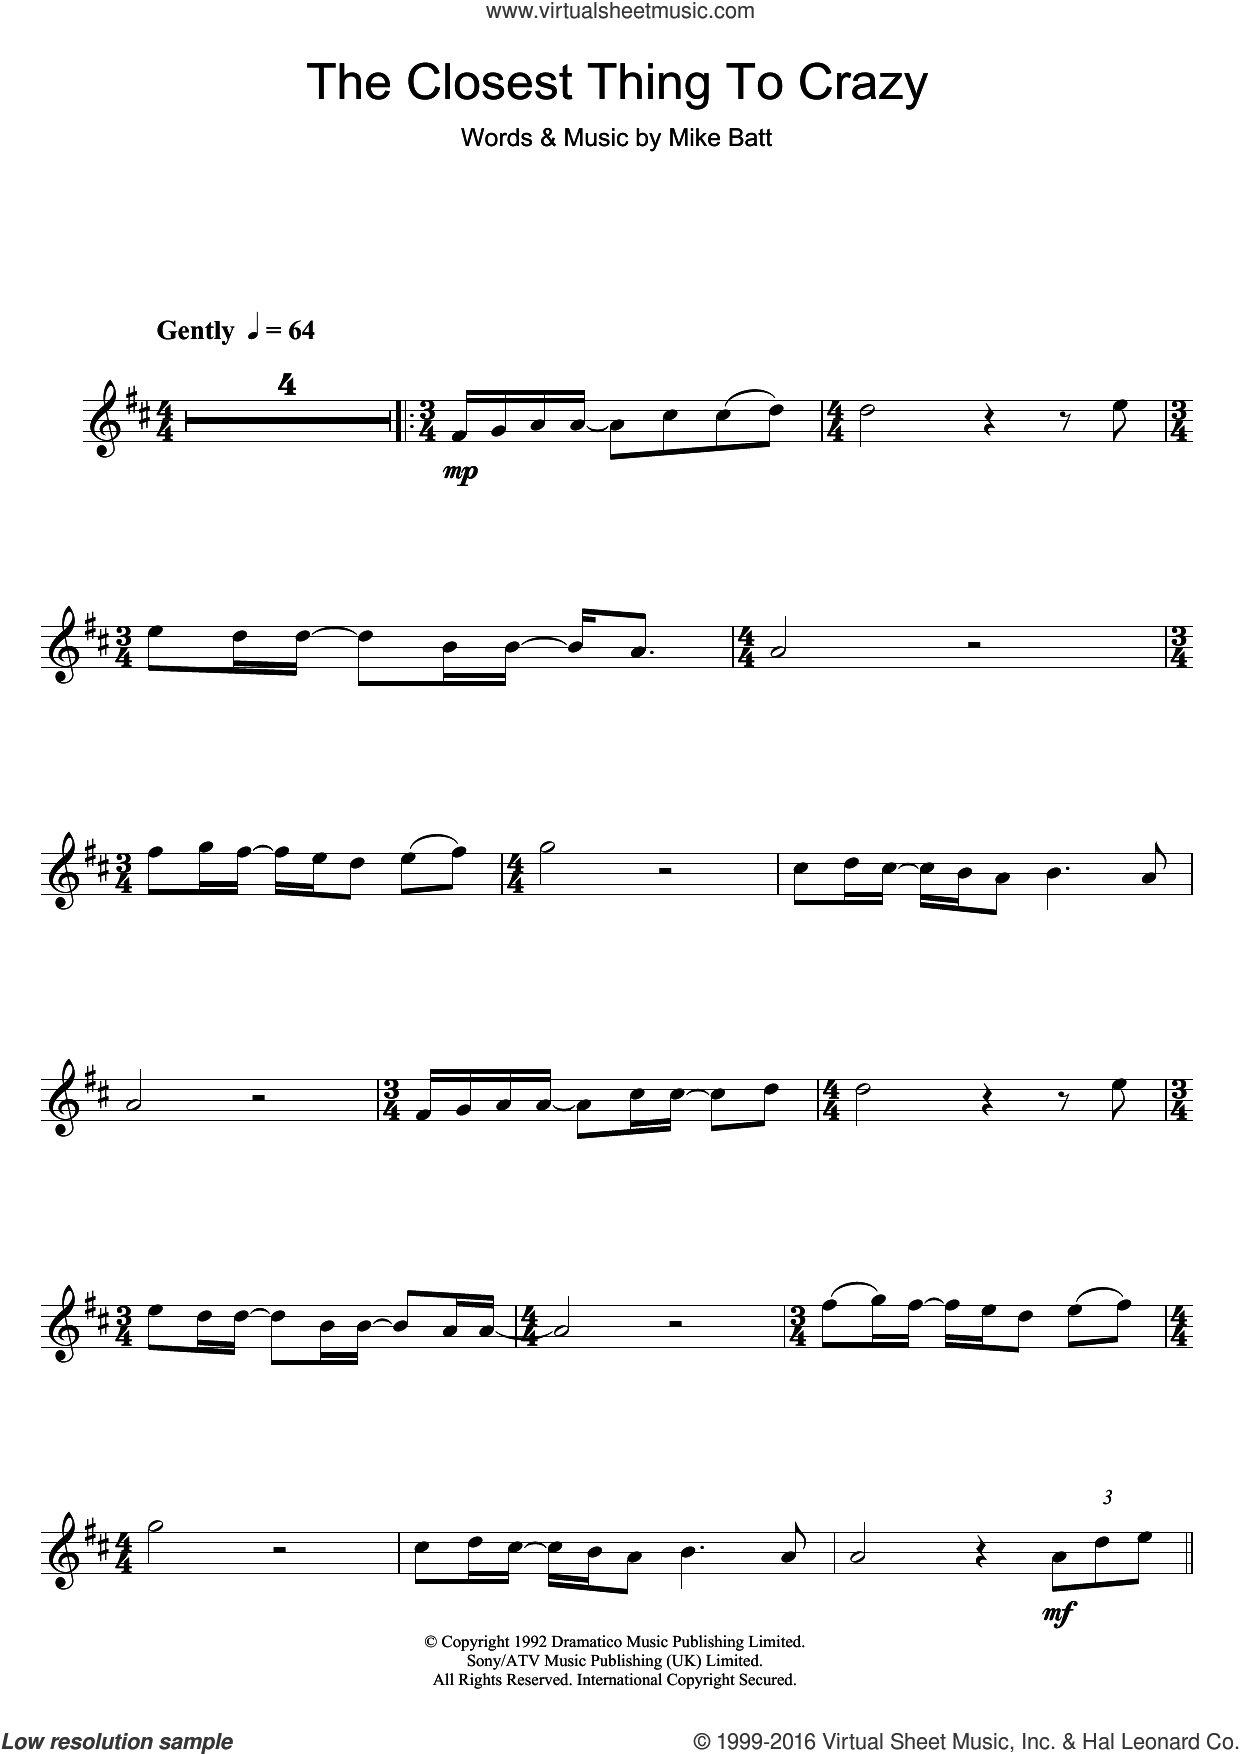 The Closest Thing To Crazy sheet music for clarinet solo by Katie Melua and Mike Batt, intermediate skill level